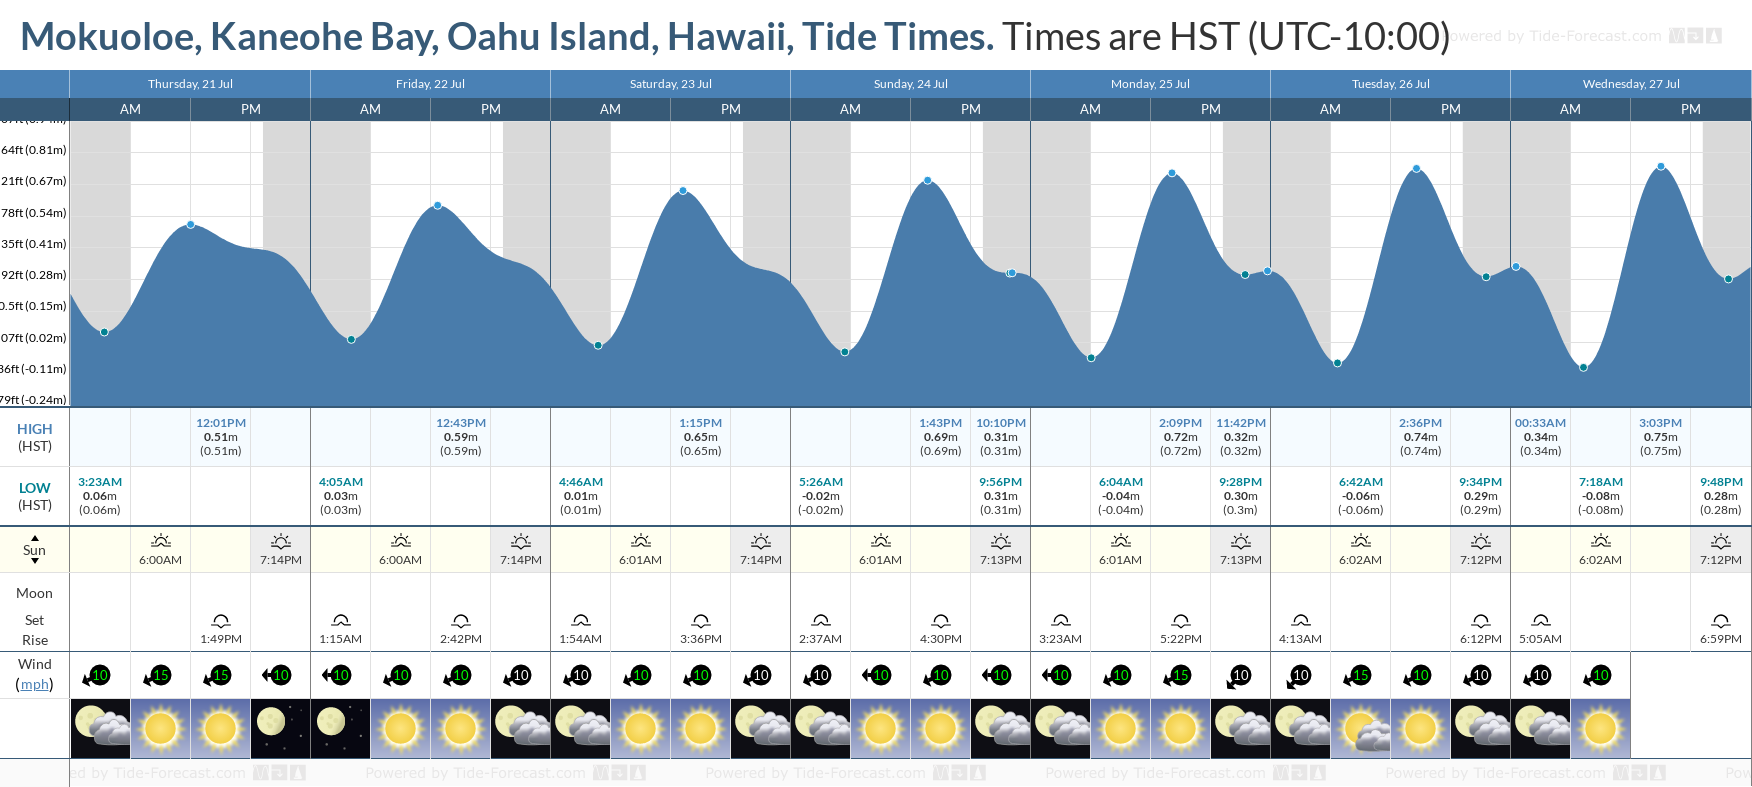 Mokuoloe, Kaneohe Bay, Oahu Island, Hawaii Tide Chart including high and low tide tide times for the next 7 days